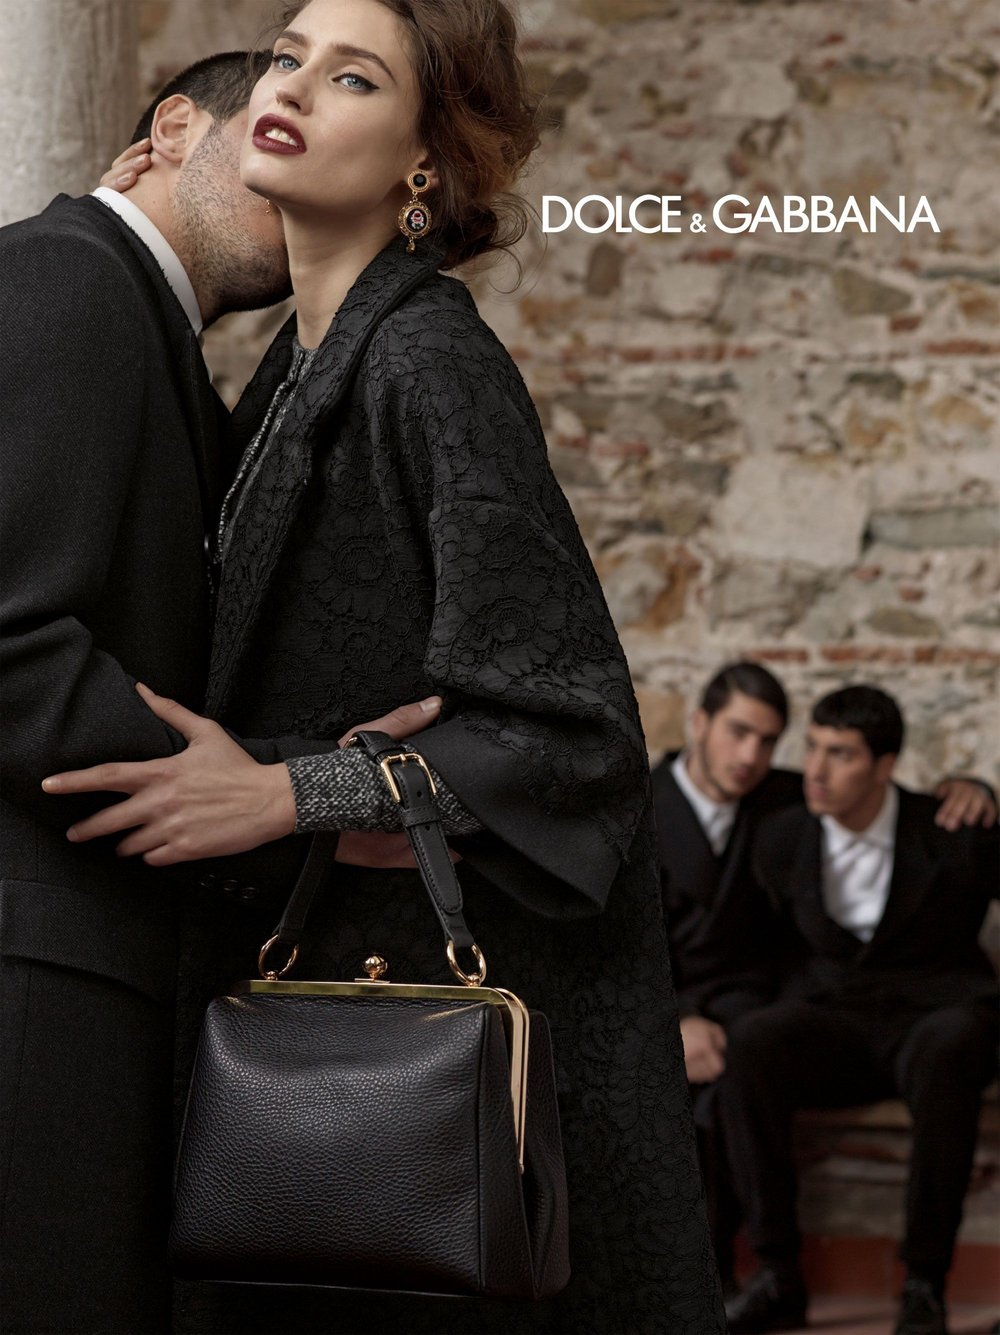 dolce-and-gabbana-fw-2014-women-adv-campaign-11.jpg